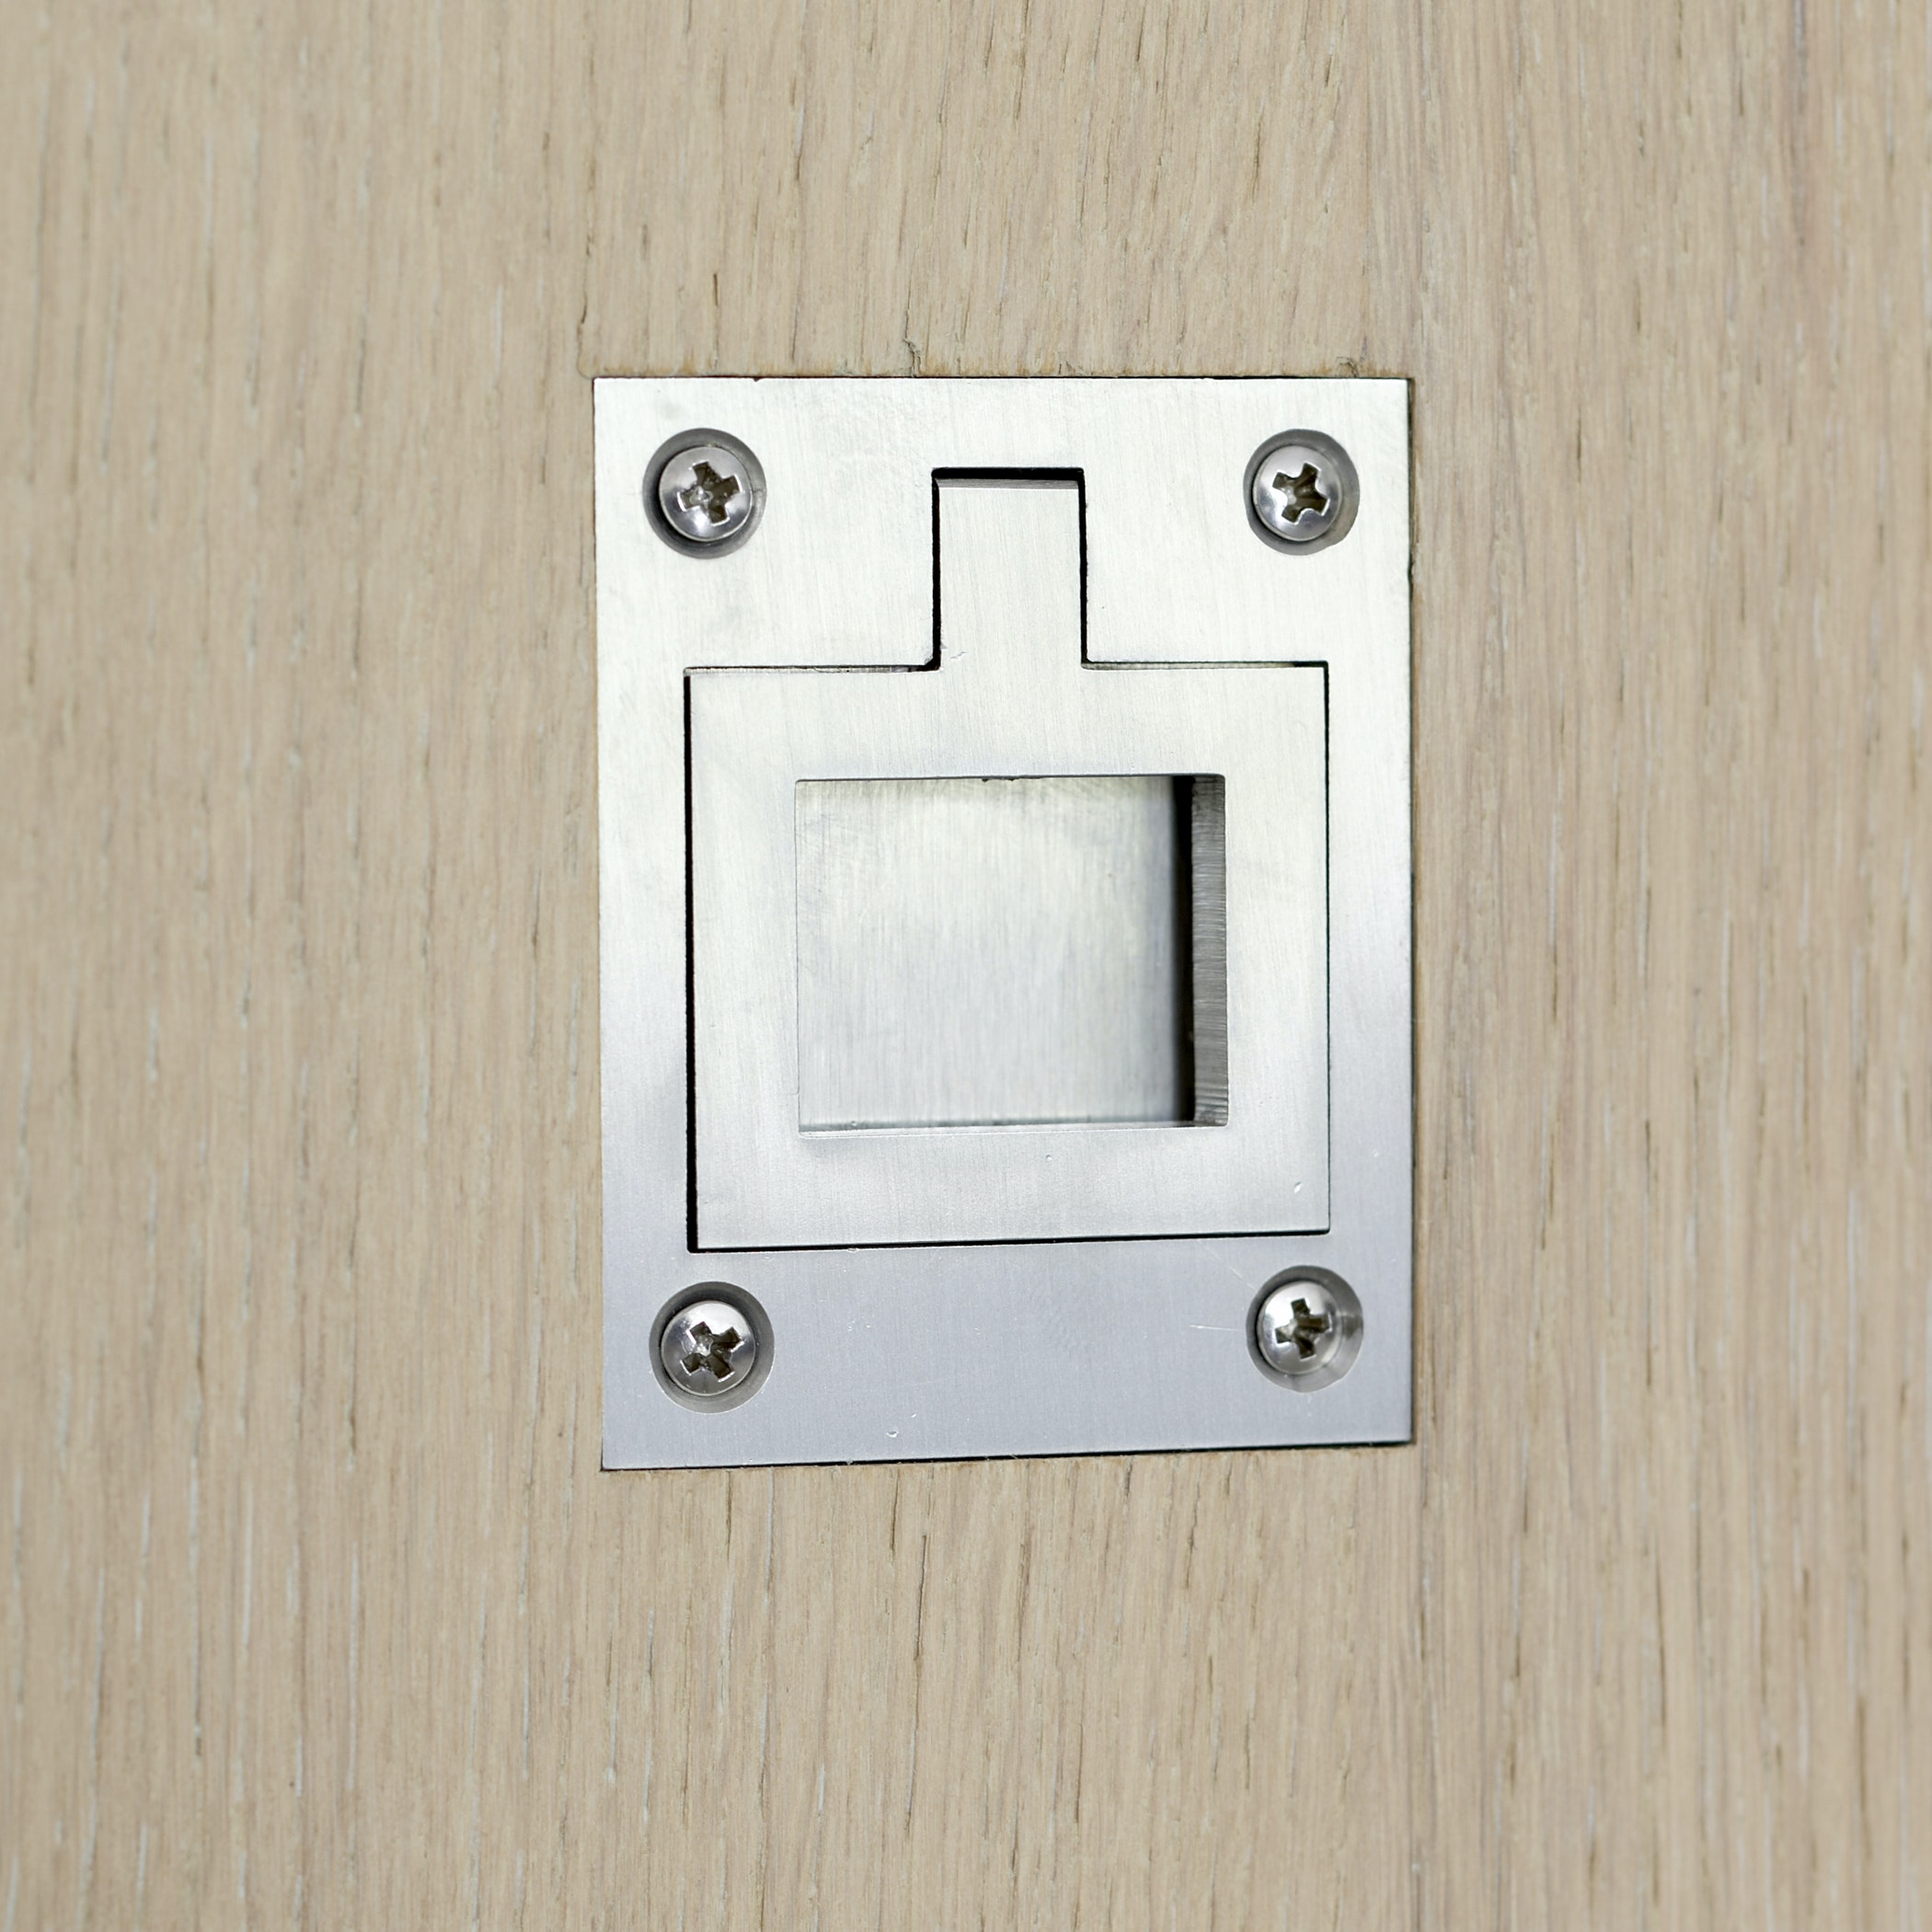 Flush Pull Handle Photo P Grootes